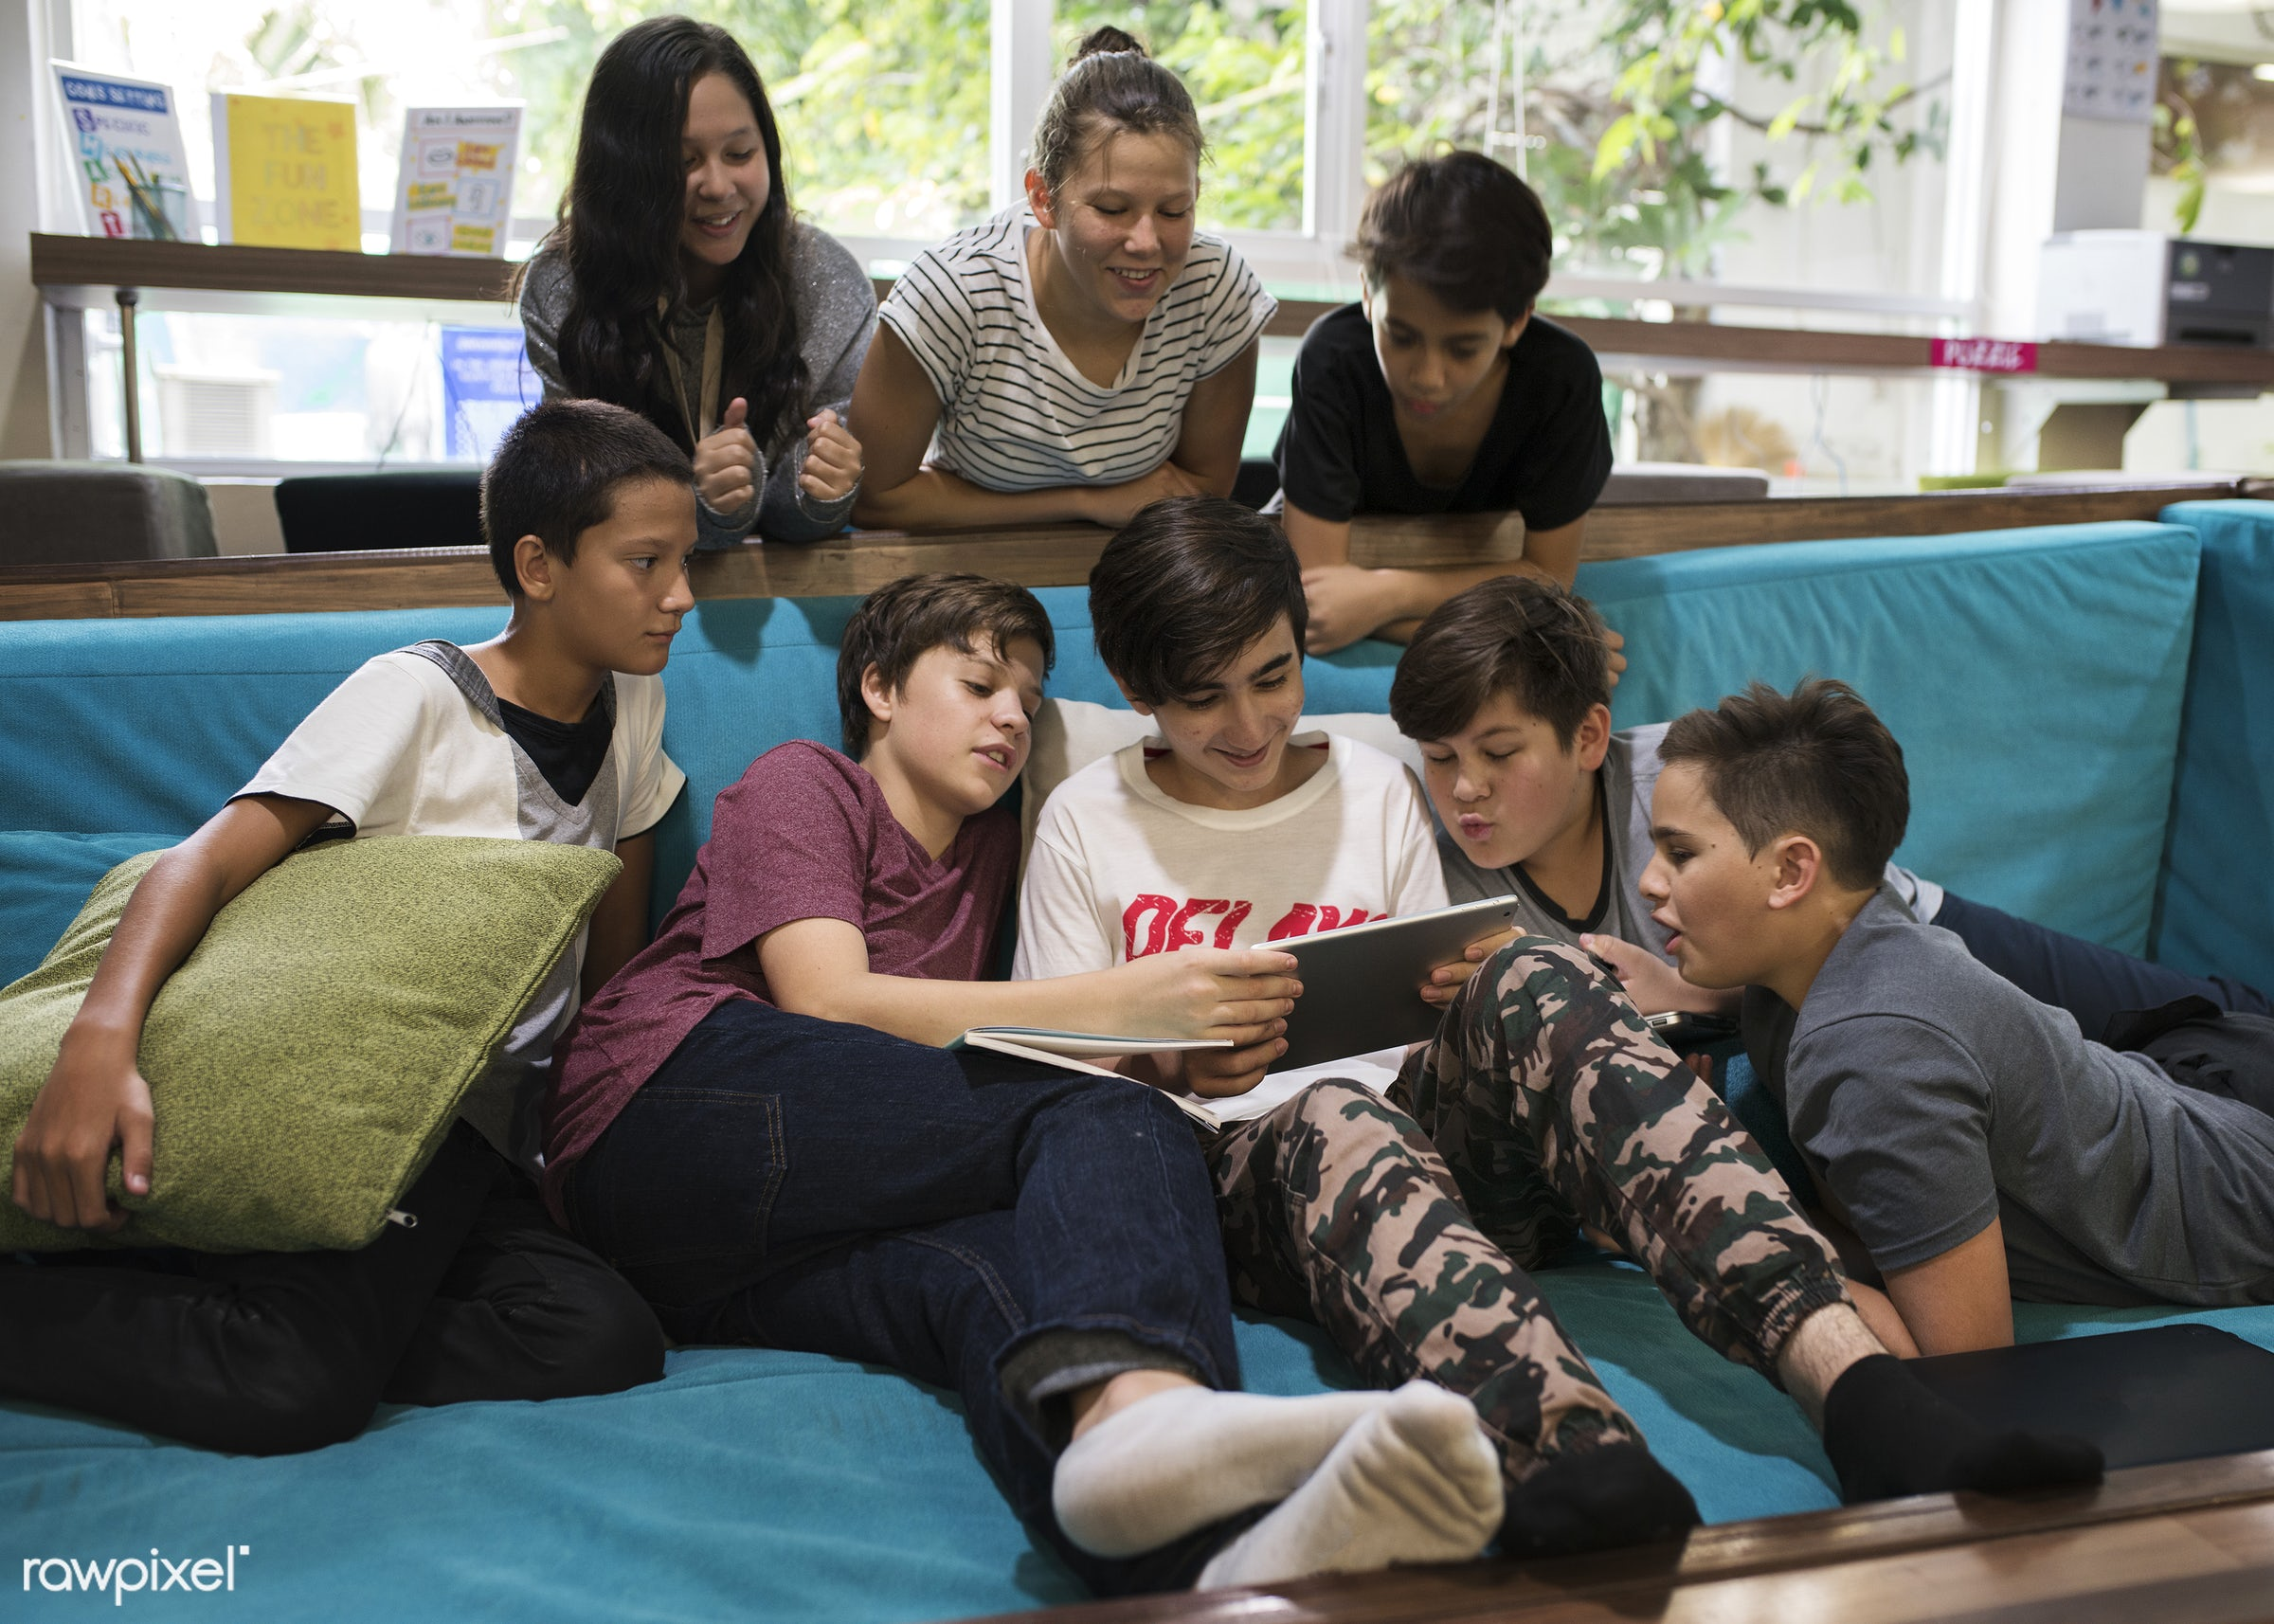 using, pillow, middle school, holding, together, sofa, young adult, watching, hands, casual, students, diversity, high...